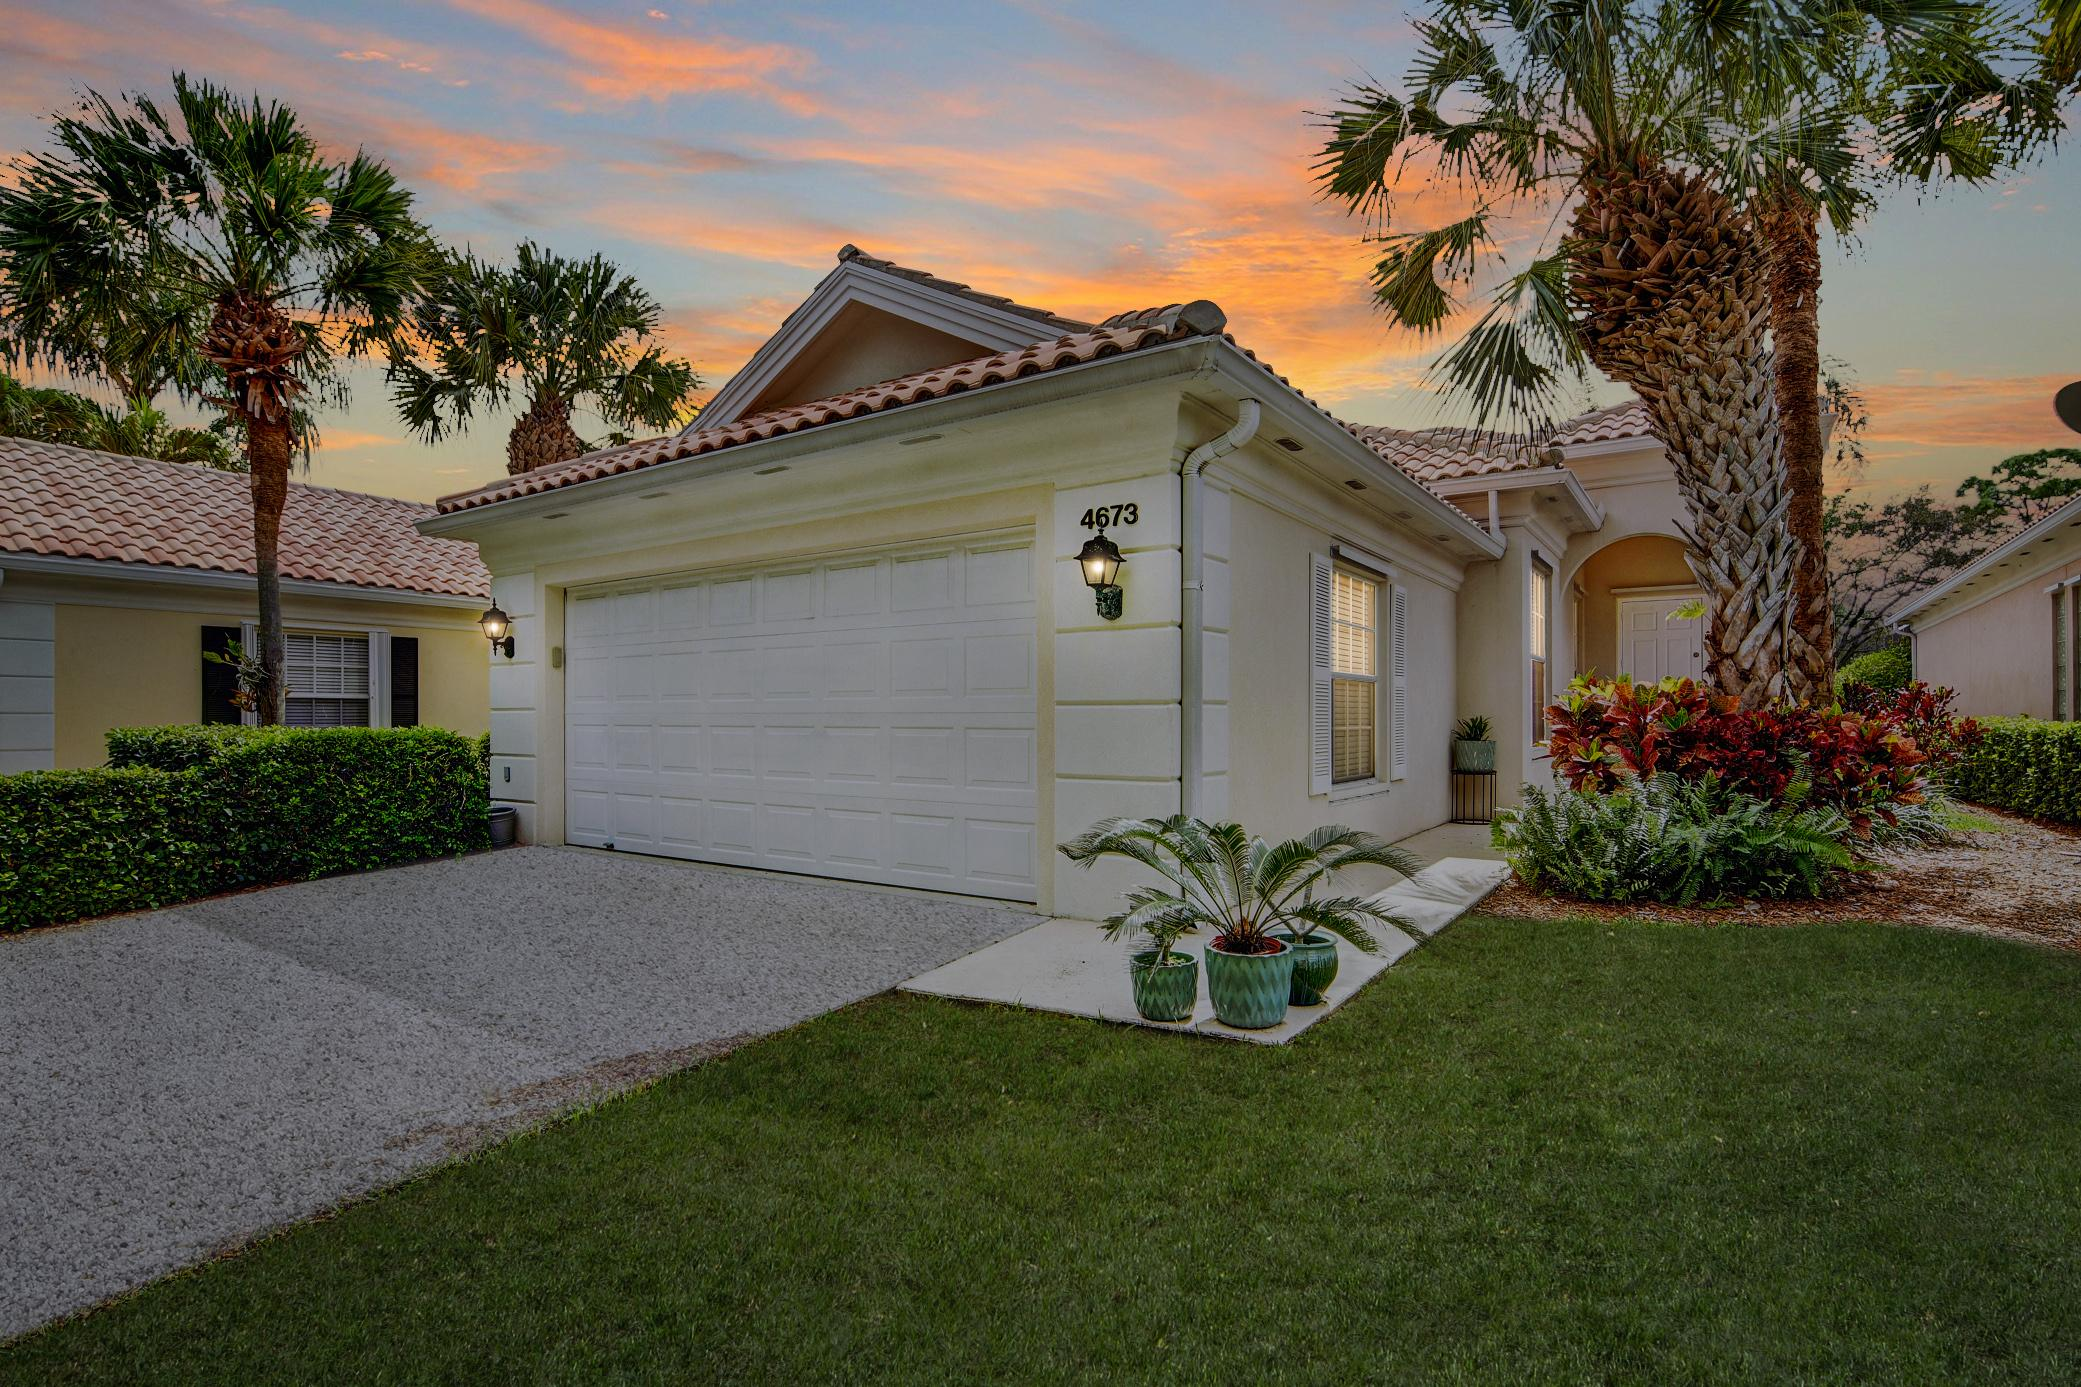 4673 Hammock Circle  Delray Beach, FL 33445